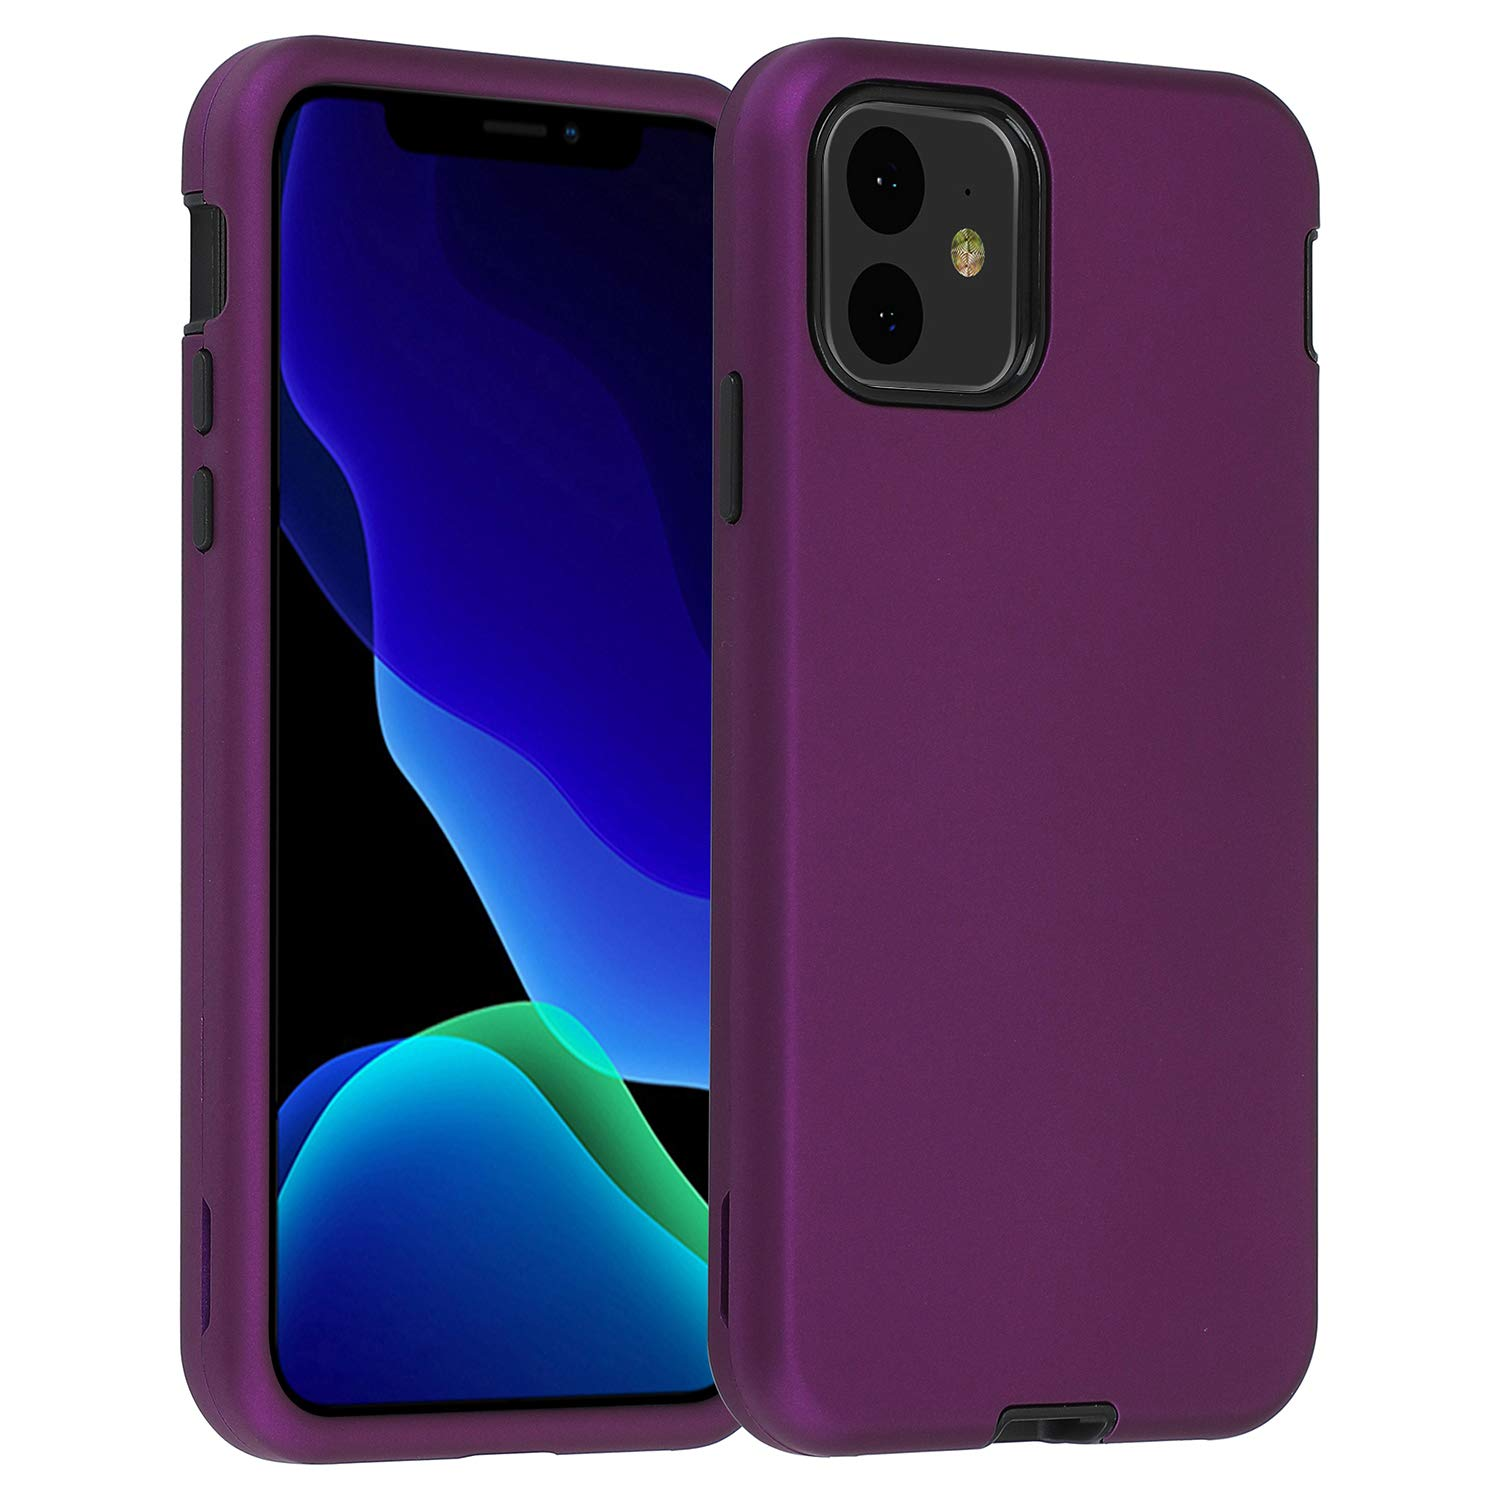 """Co-Goldguard Case for iPhone 11 2019 6.1"""" Heavy Duty Armor 3 in 1 Armor Rugged Cover Shockproof Drop-Proof Scratch-Resistant Tough Shell Design for iPhone 11 6.1 inch,Purple"""